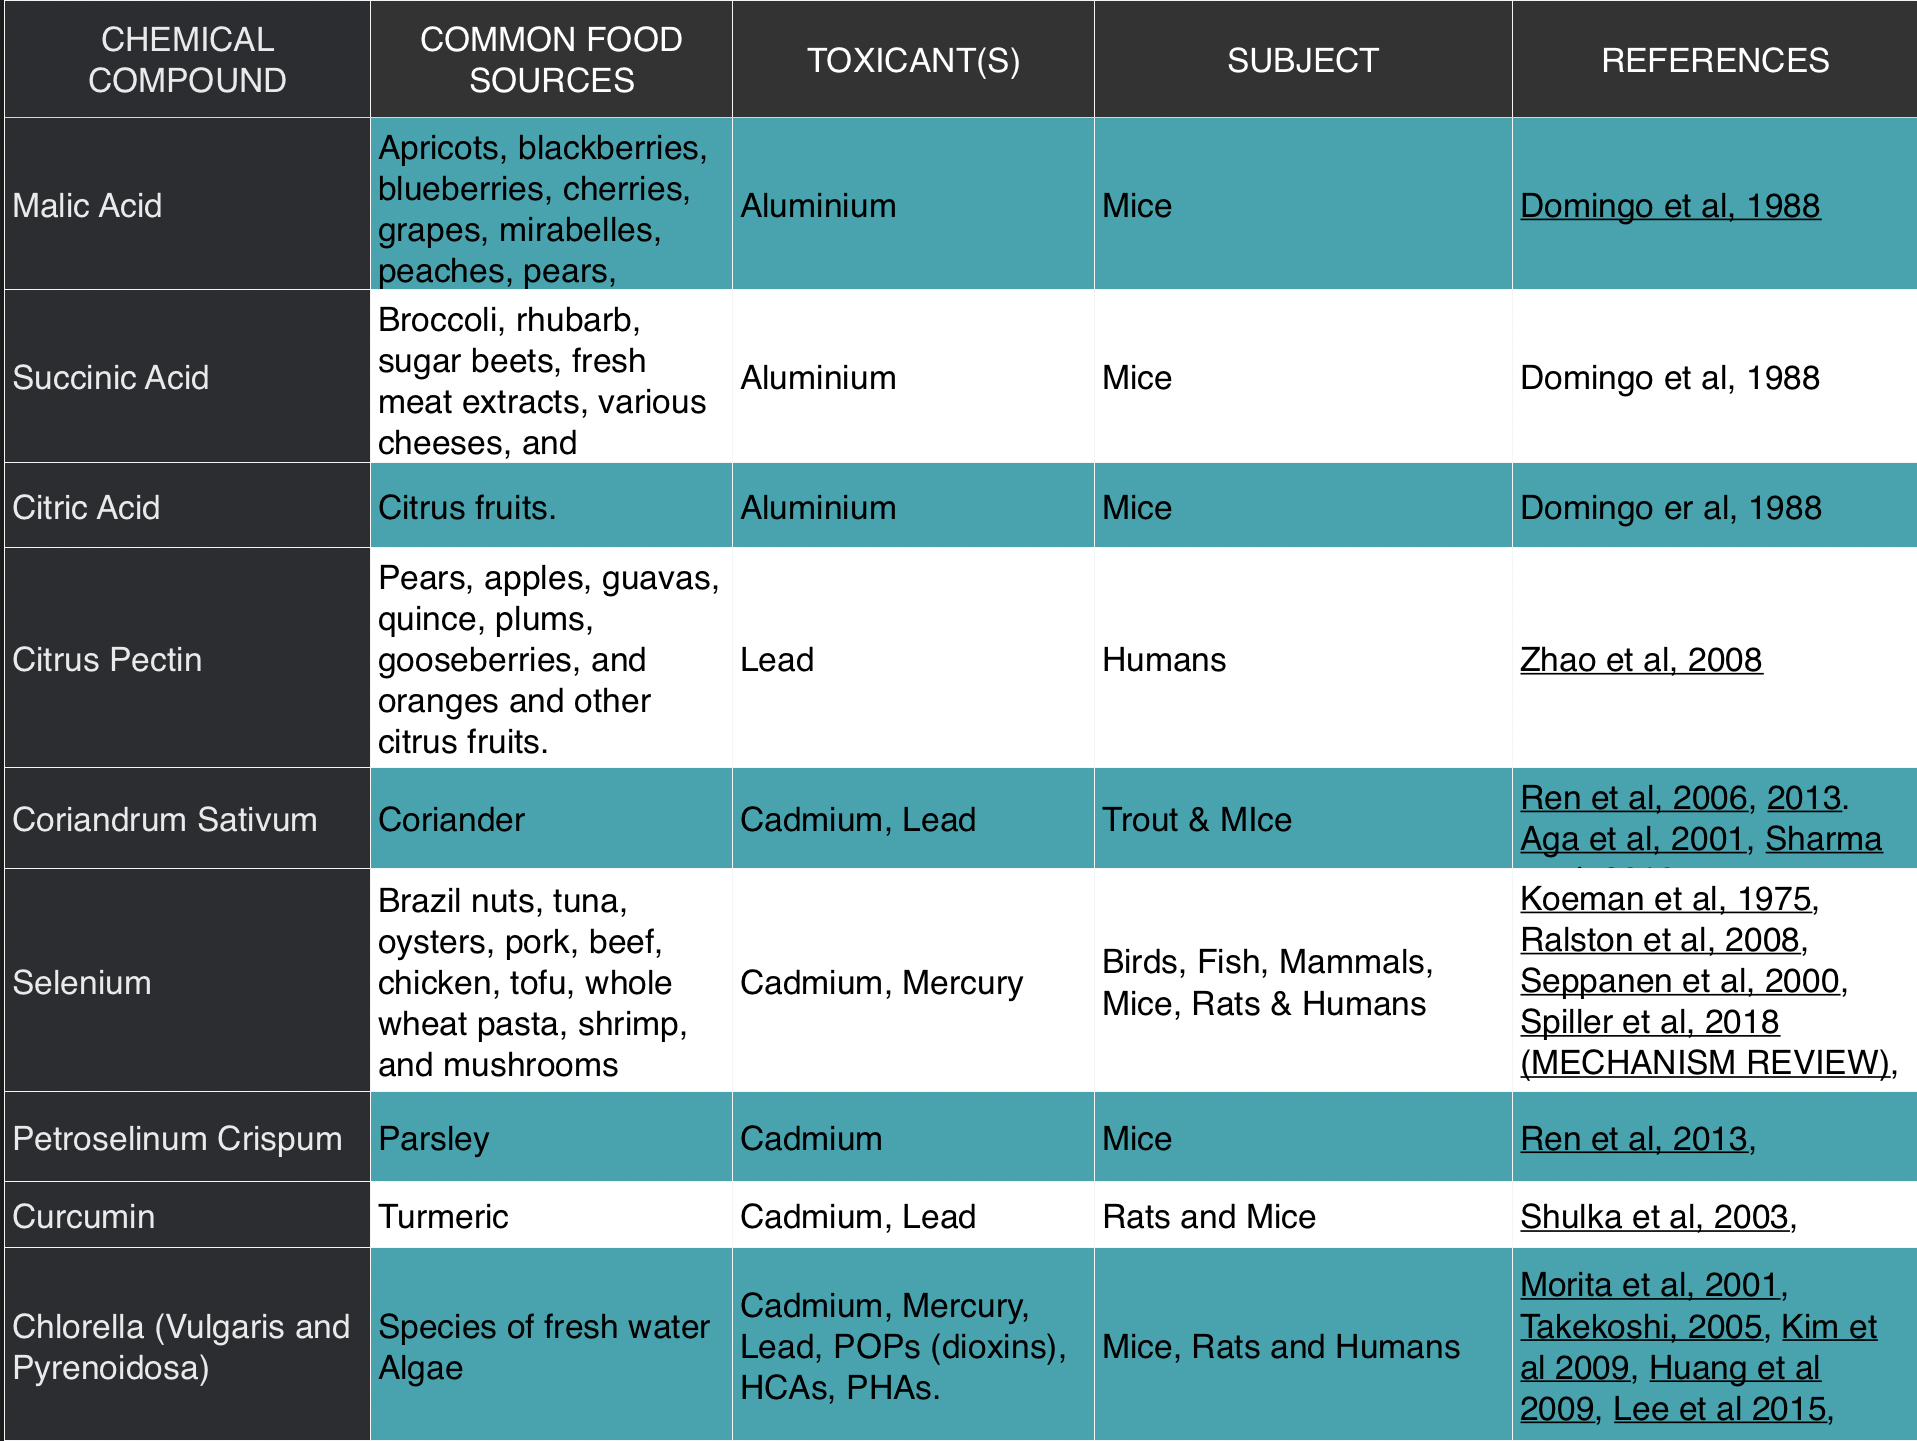 Literature matrix; chemical compounds shown to enhance toxicant excretion (14)